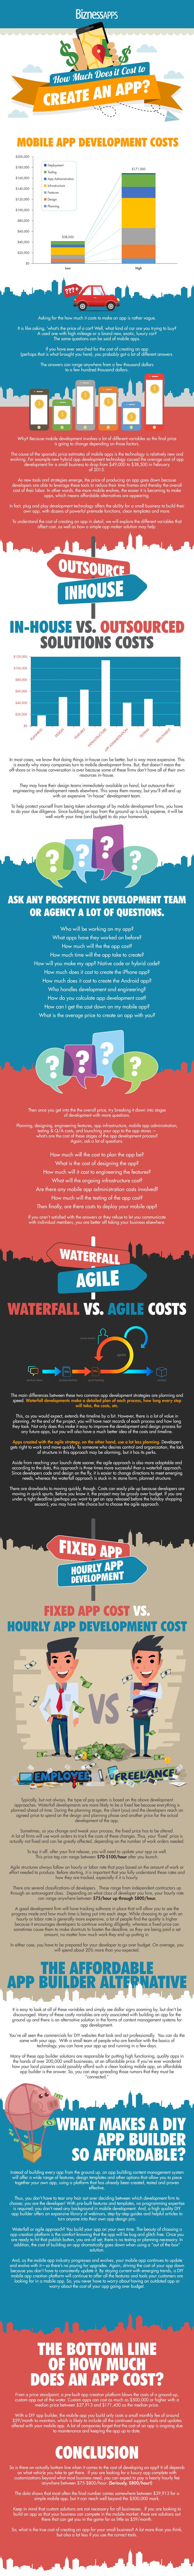 How Much Does it Cost to Build an App? [Infographic]